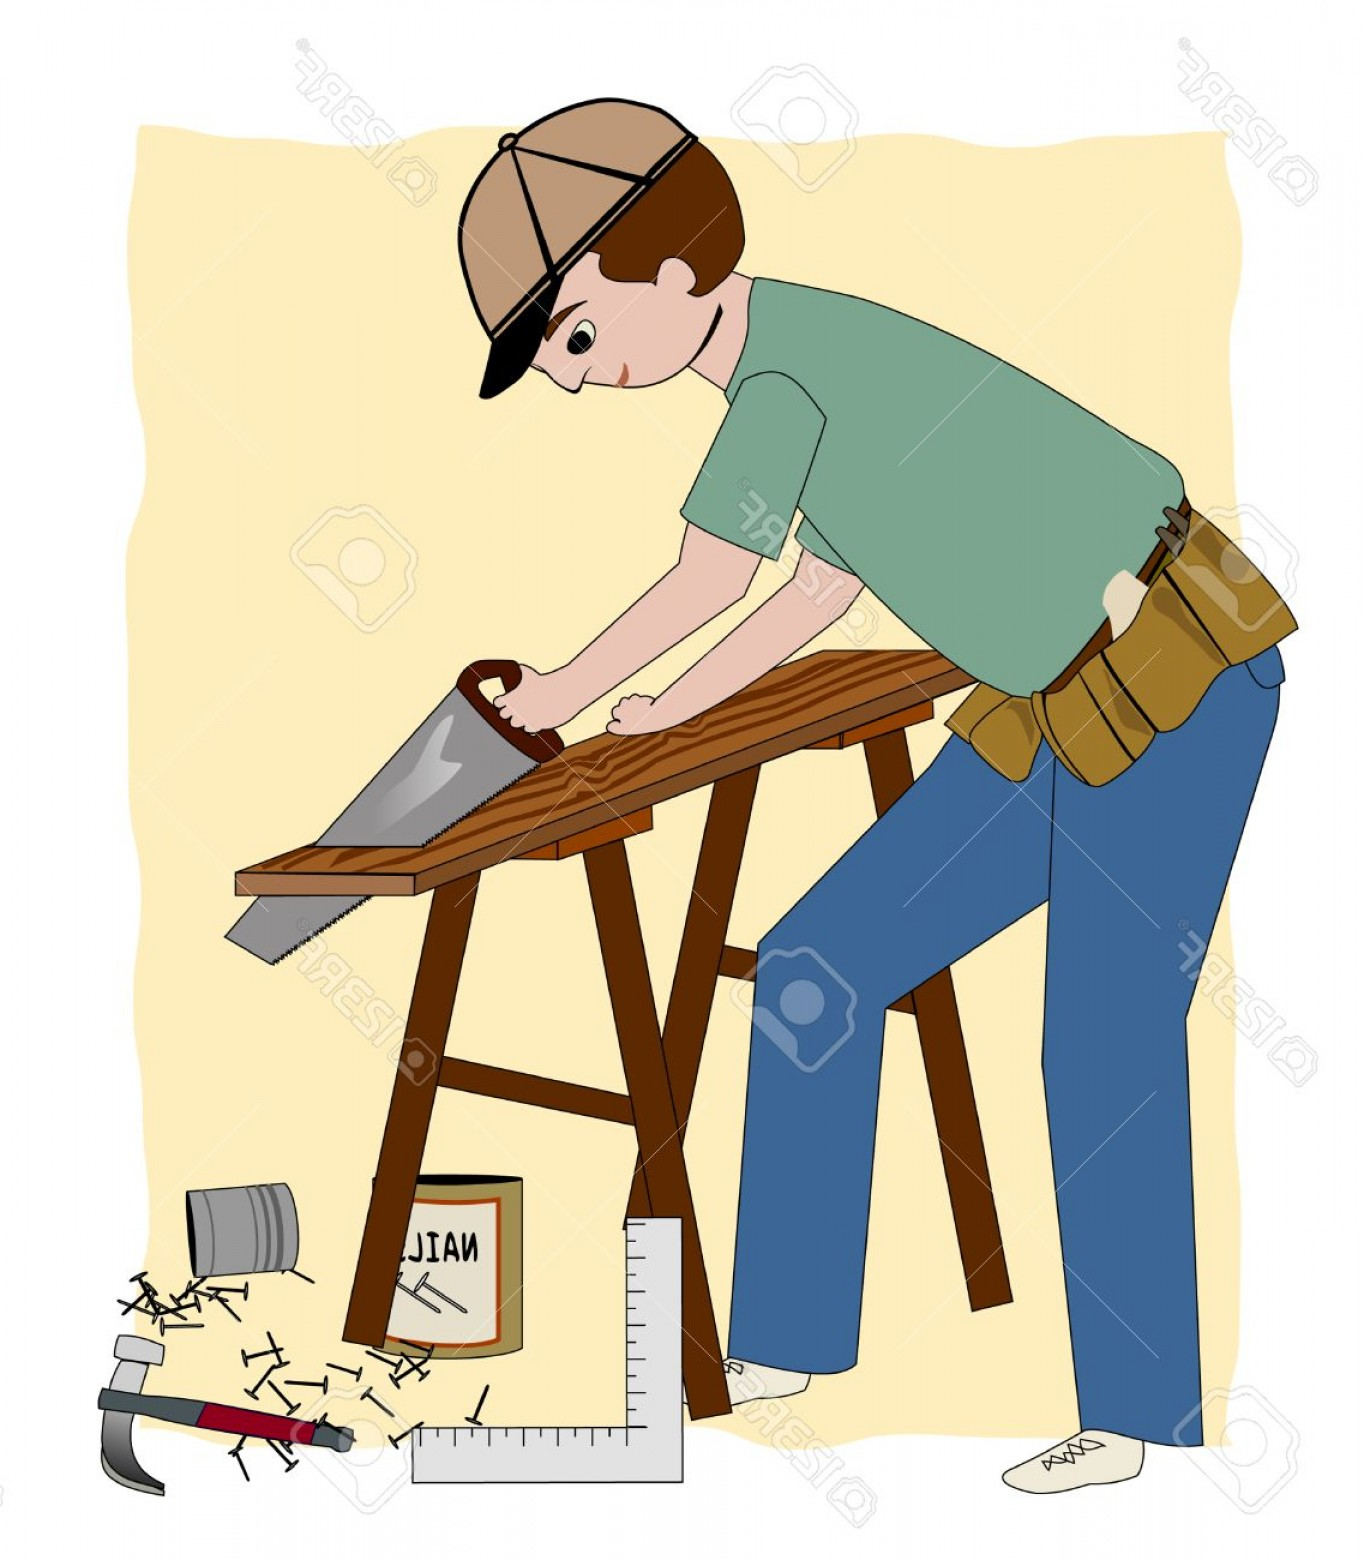 General Contractor Vector: Photoa Working Carpenter Builder Or General Contractor With A Sawhorse Wood Nails